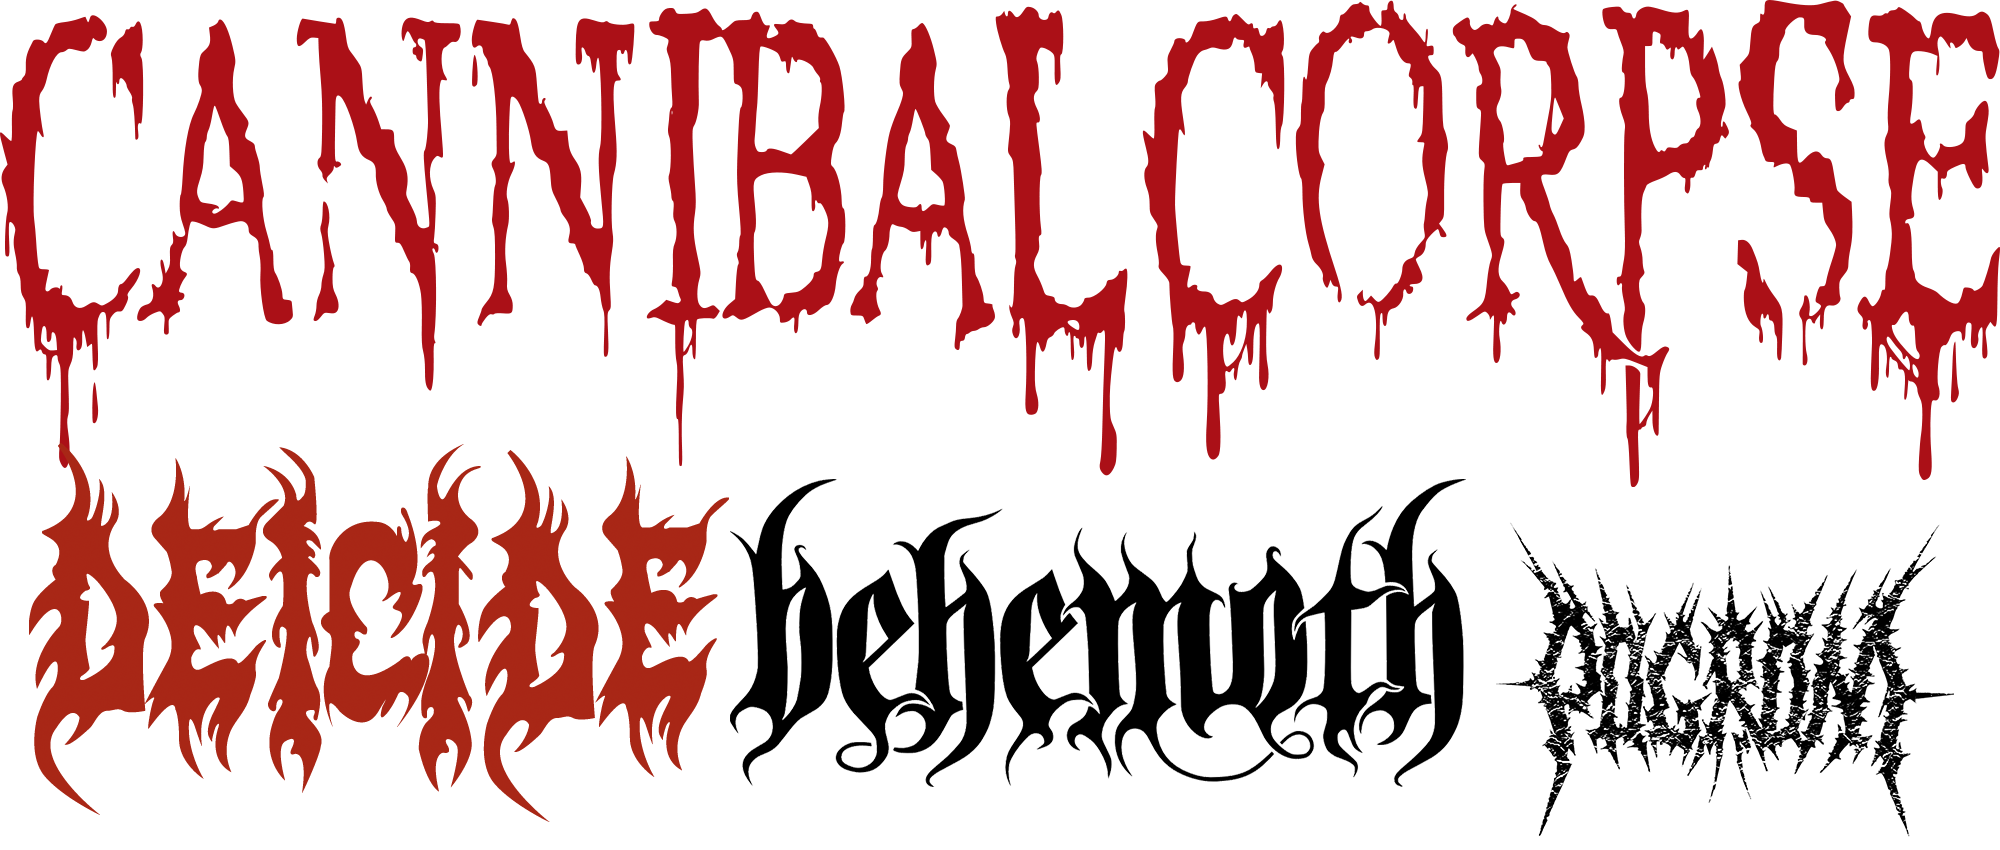 file death metal band logos png wikimedia commons rh commons wikimedia org death metal band logo maker death metal band logos meme